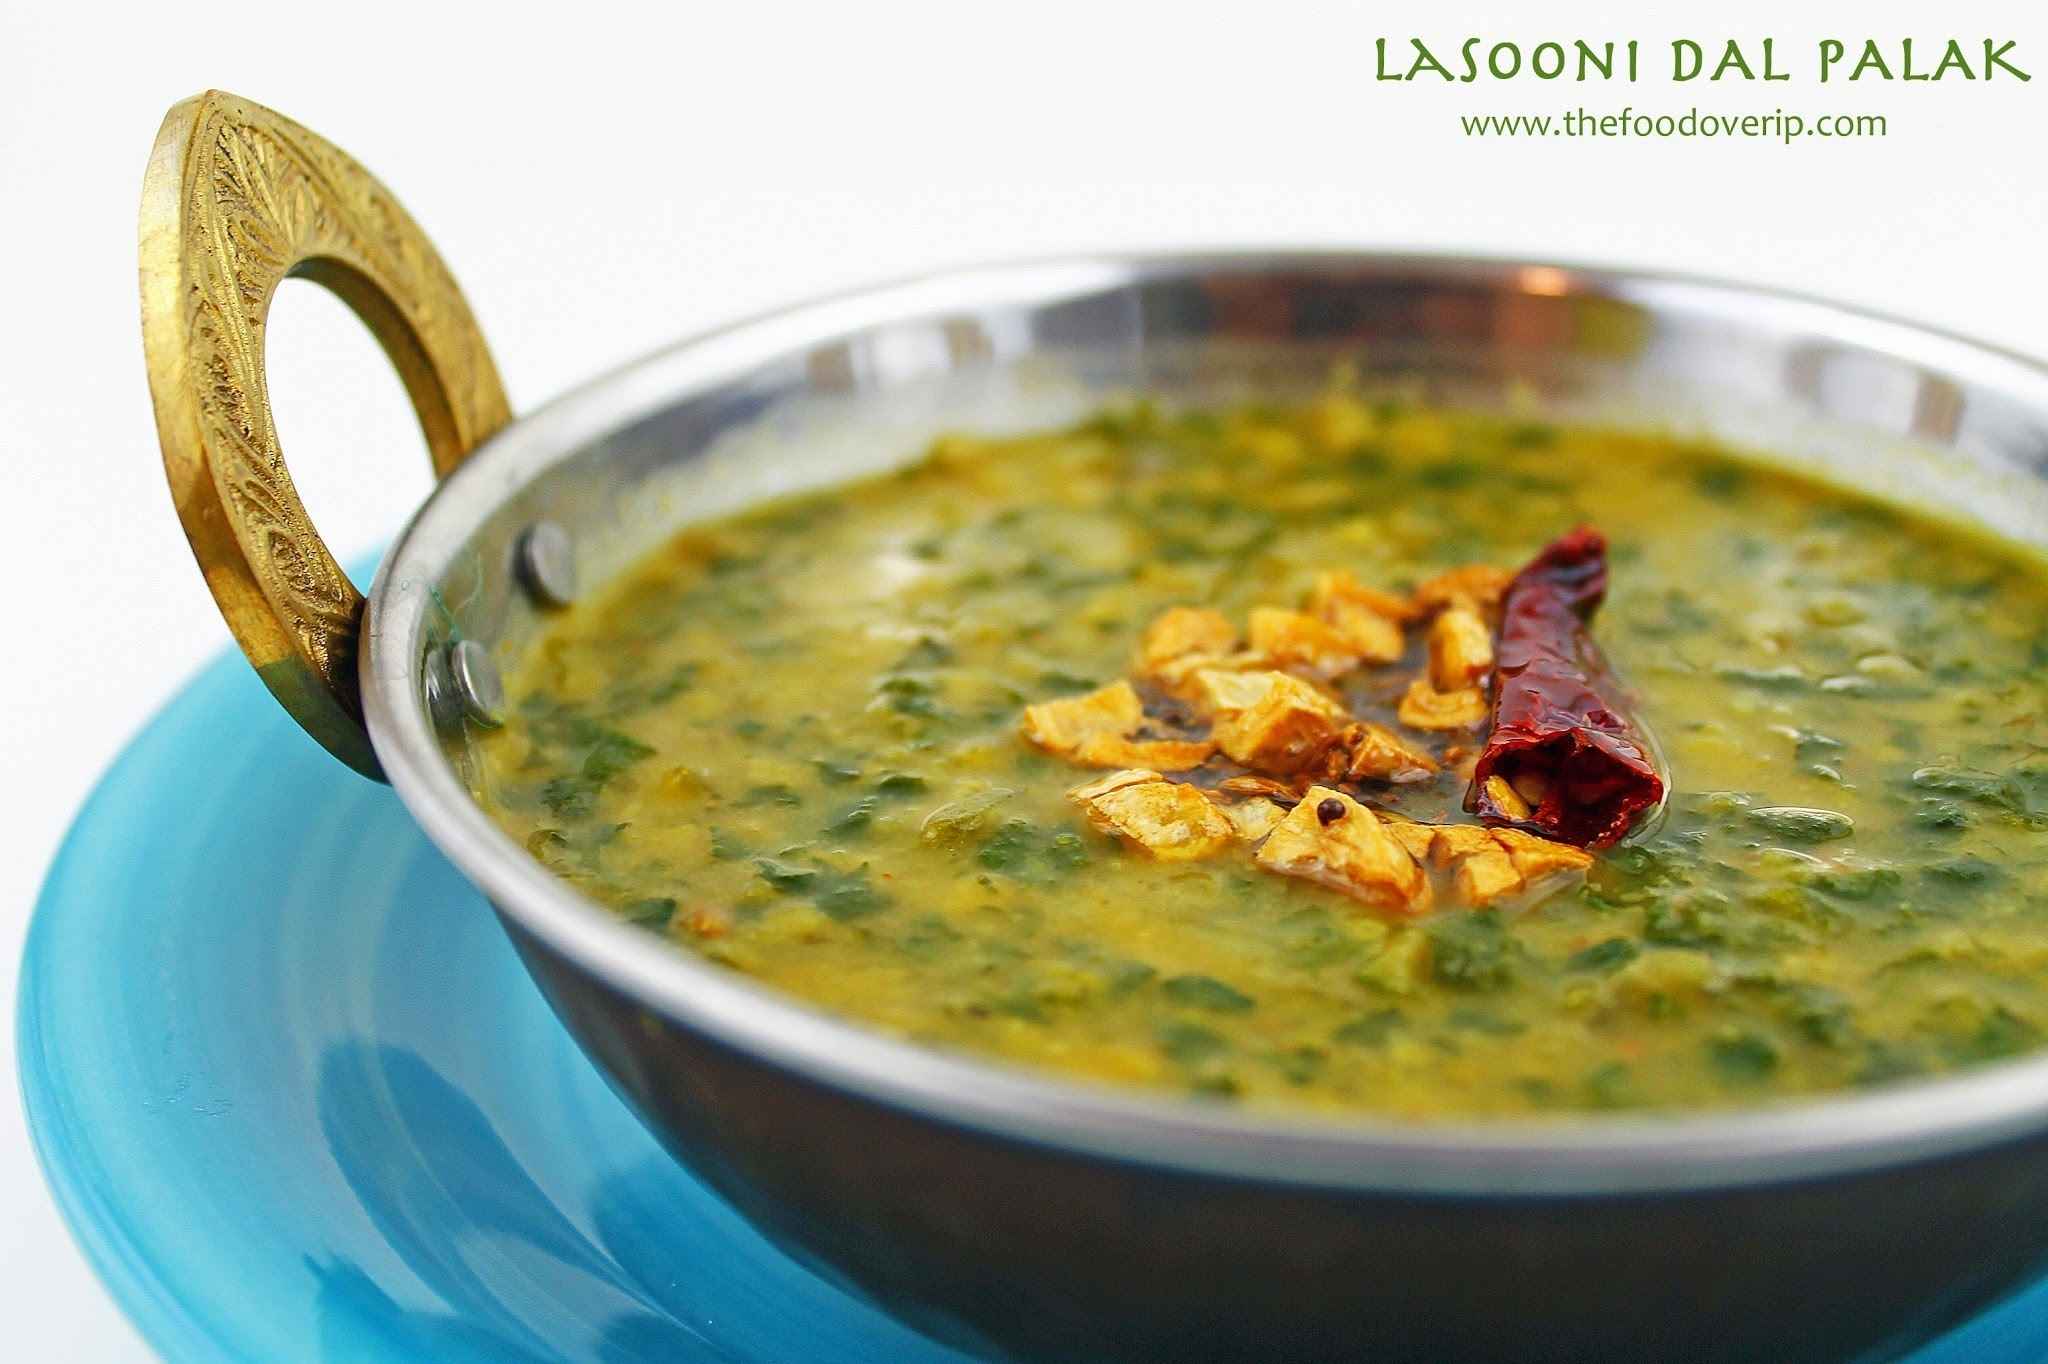 Lasooni Palak Dal \ Garlic flavored Lentils with Spinach